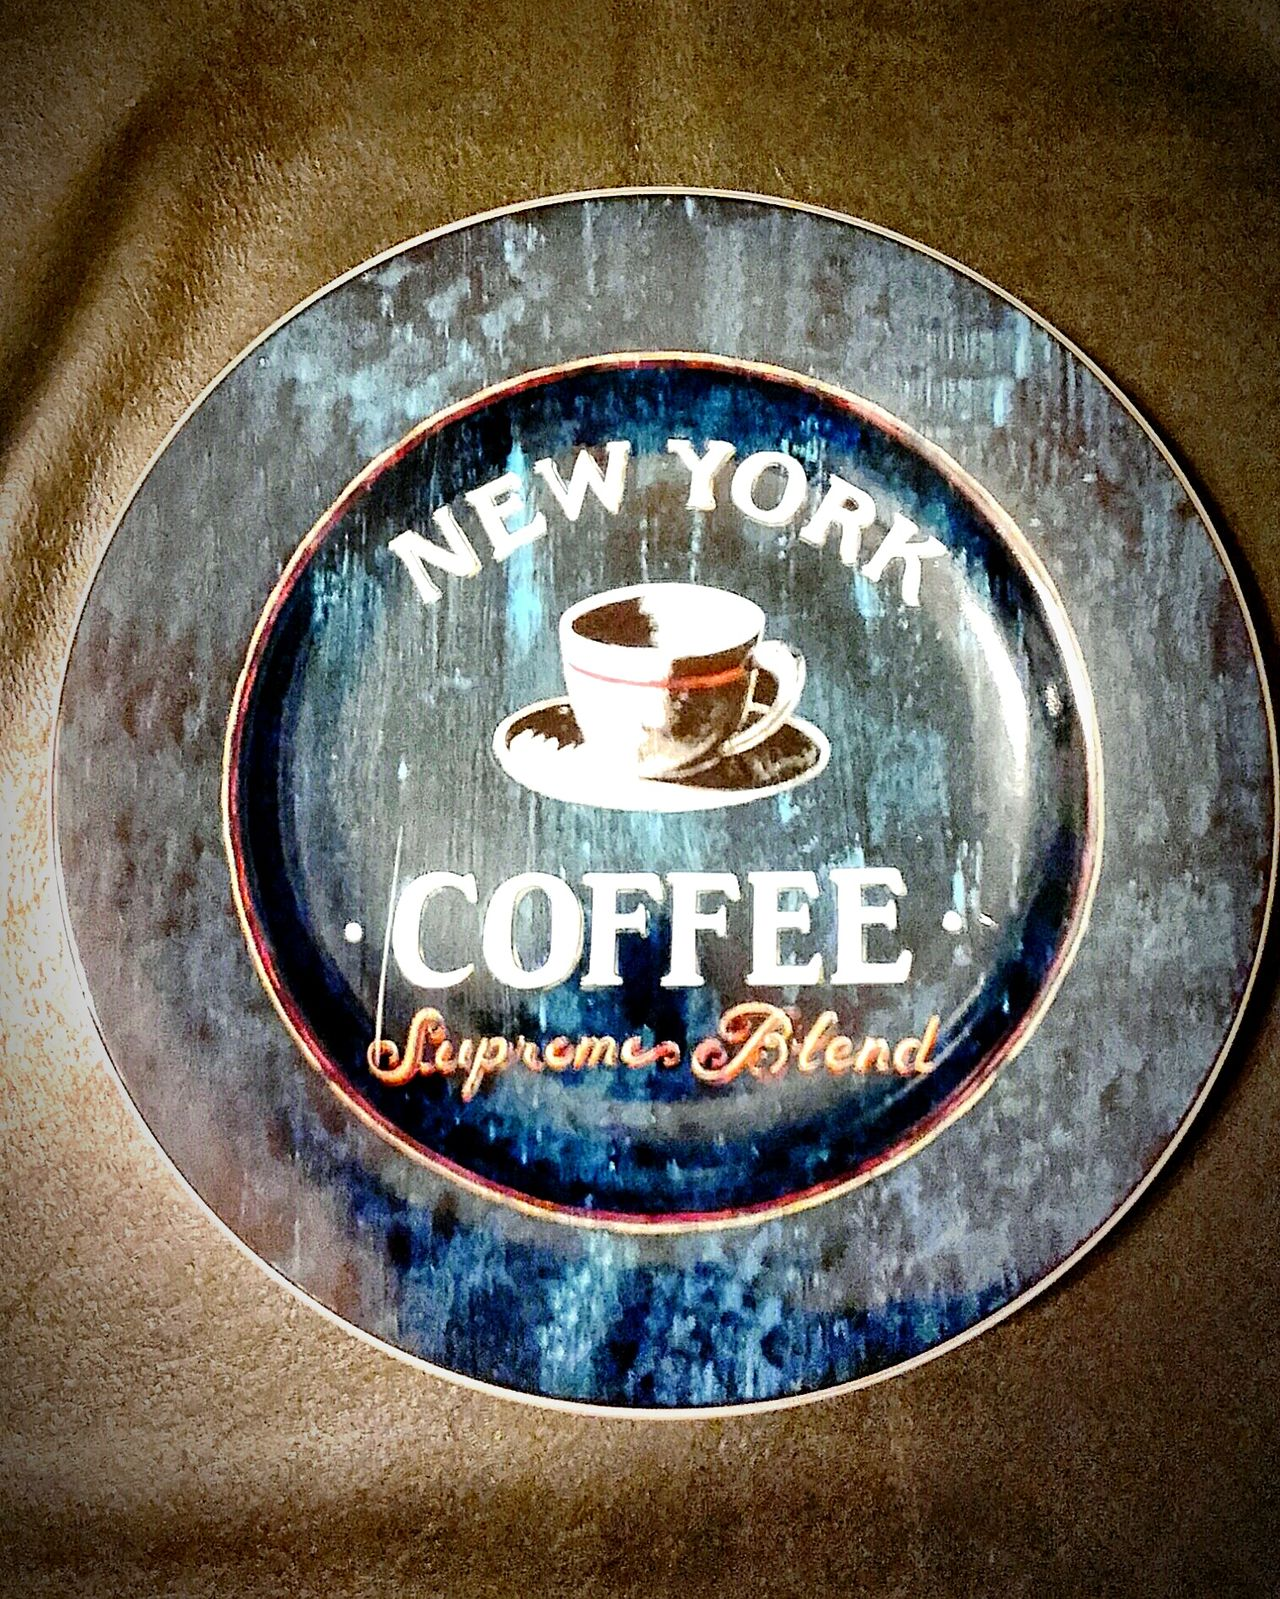 New York Coffee Sign Coffee Signs Signs_collection Signs, Signs, & More Signs Signporn Signs & More Signs Cafe SIGN. Coffee Signs Coffeesign Coffee Sign Cafés Coffeesigns Supreme Blend Signage Signs Signs Everywhere Signs Coffeeporn Coffee Signage Cafe Sign Cafesign Cafésigns Cafe Signs NY